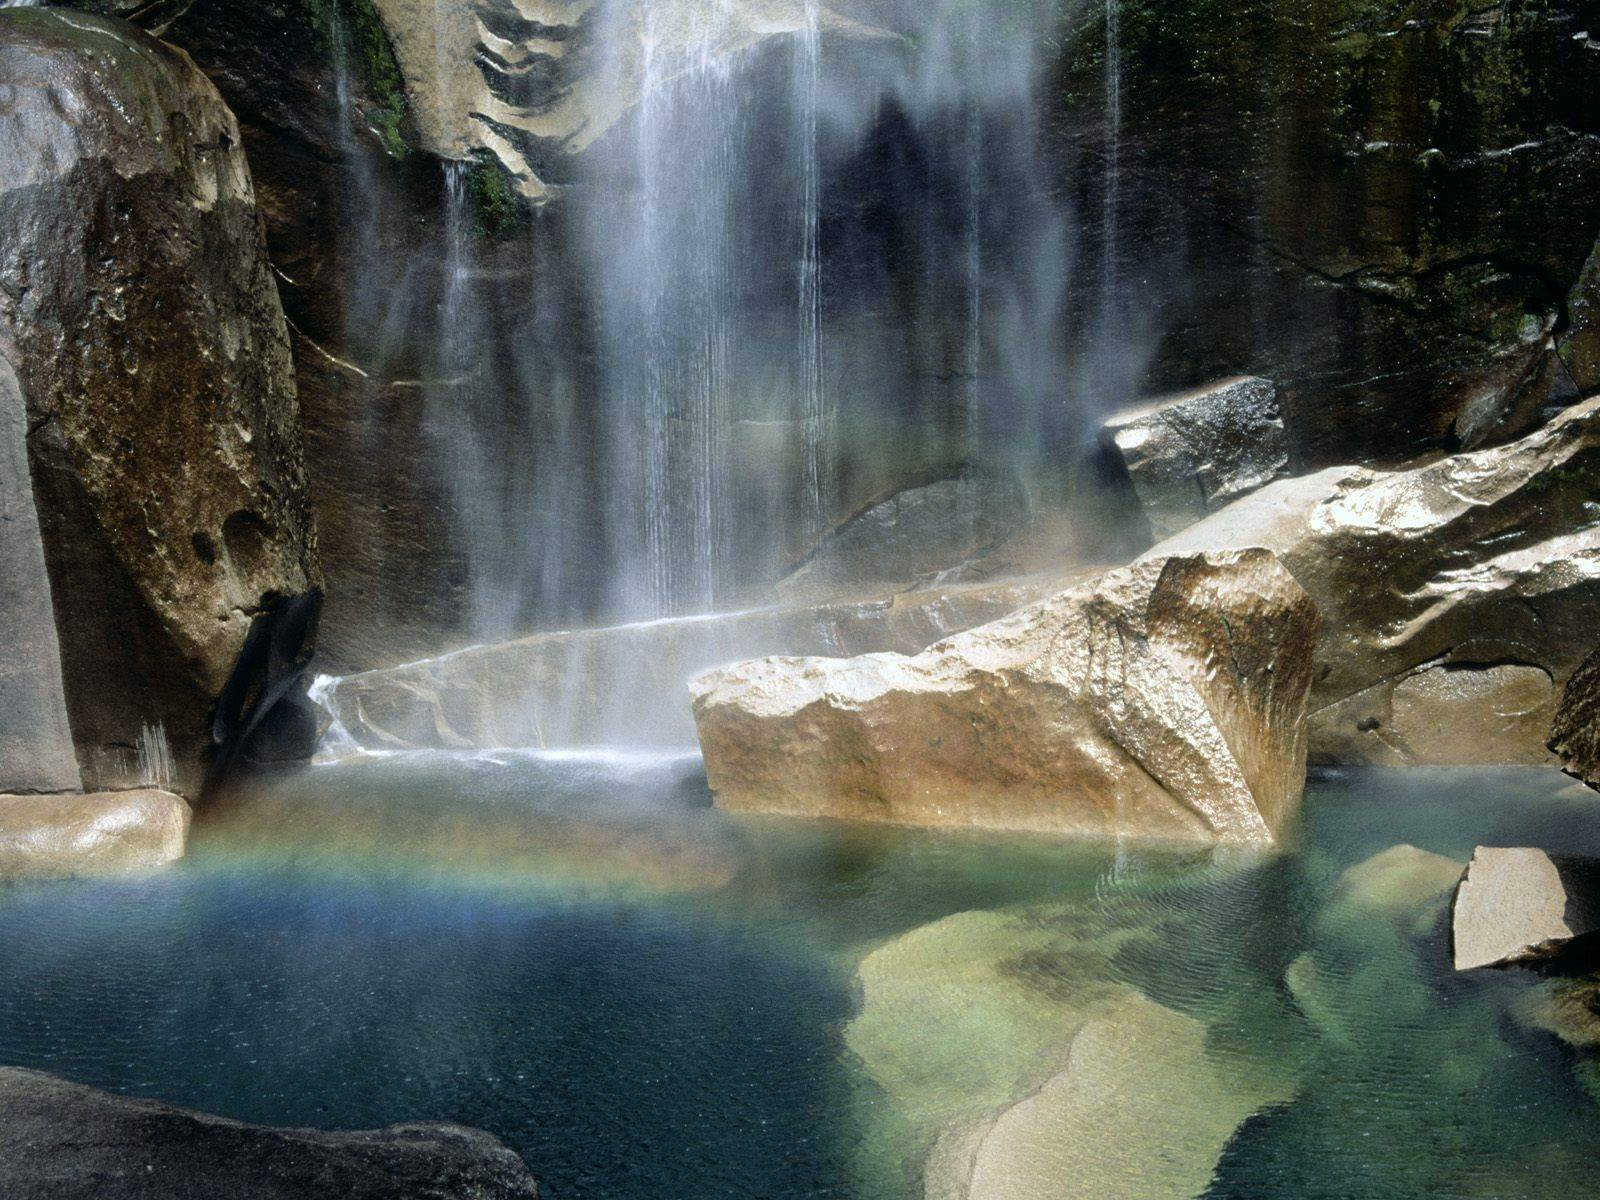 http://grandcanyon.free.fr/images/cascade/original/Natural%20Phenomenon,%20Vernal%20Falls,%20Yosemite,%20California.jpg